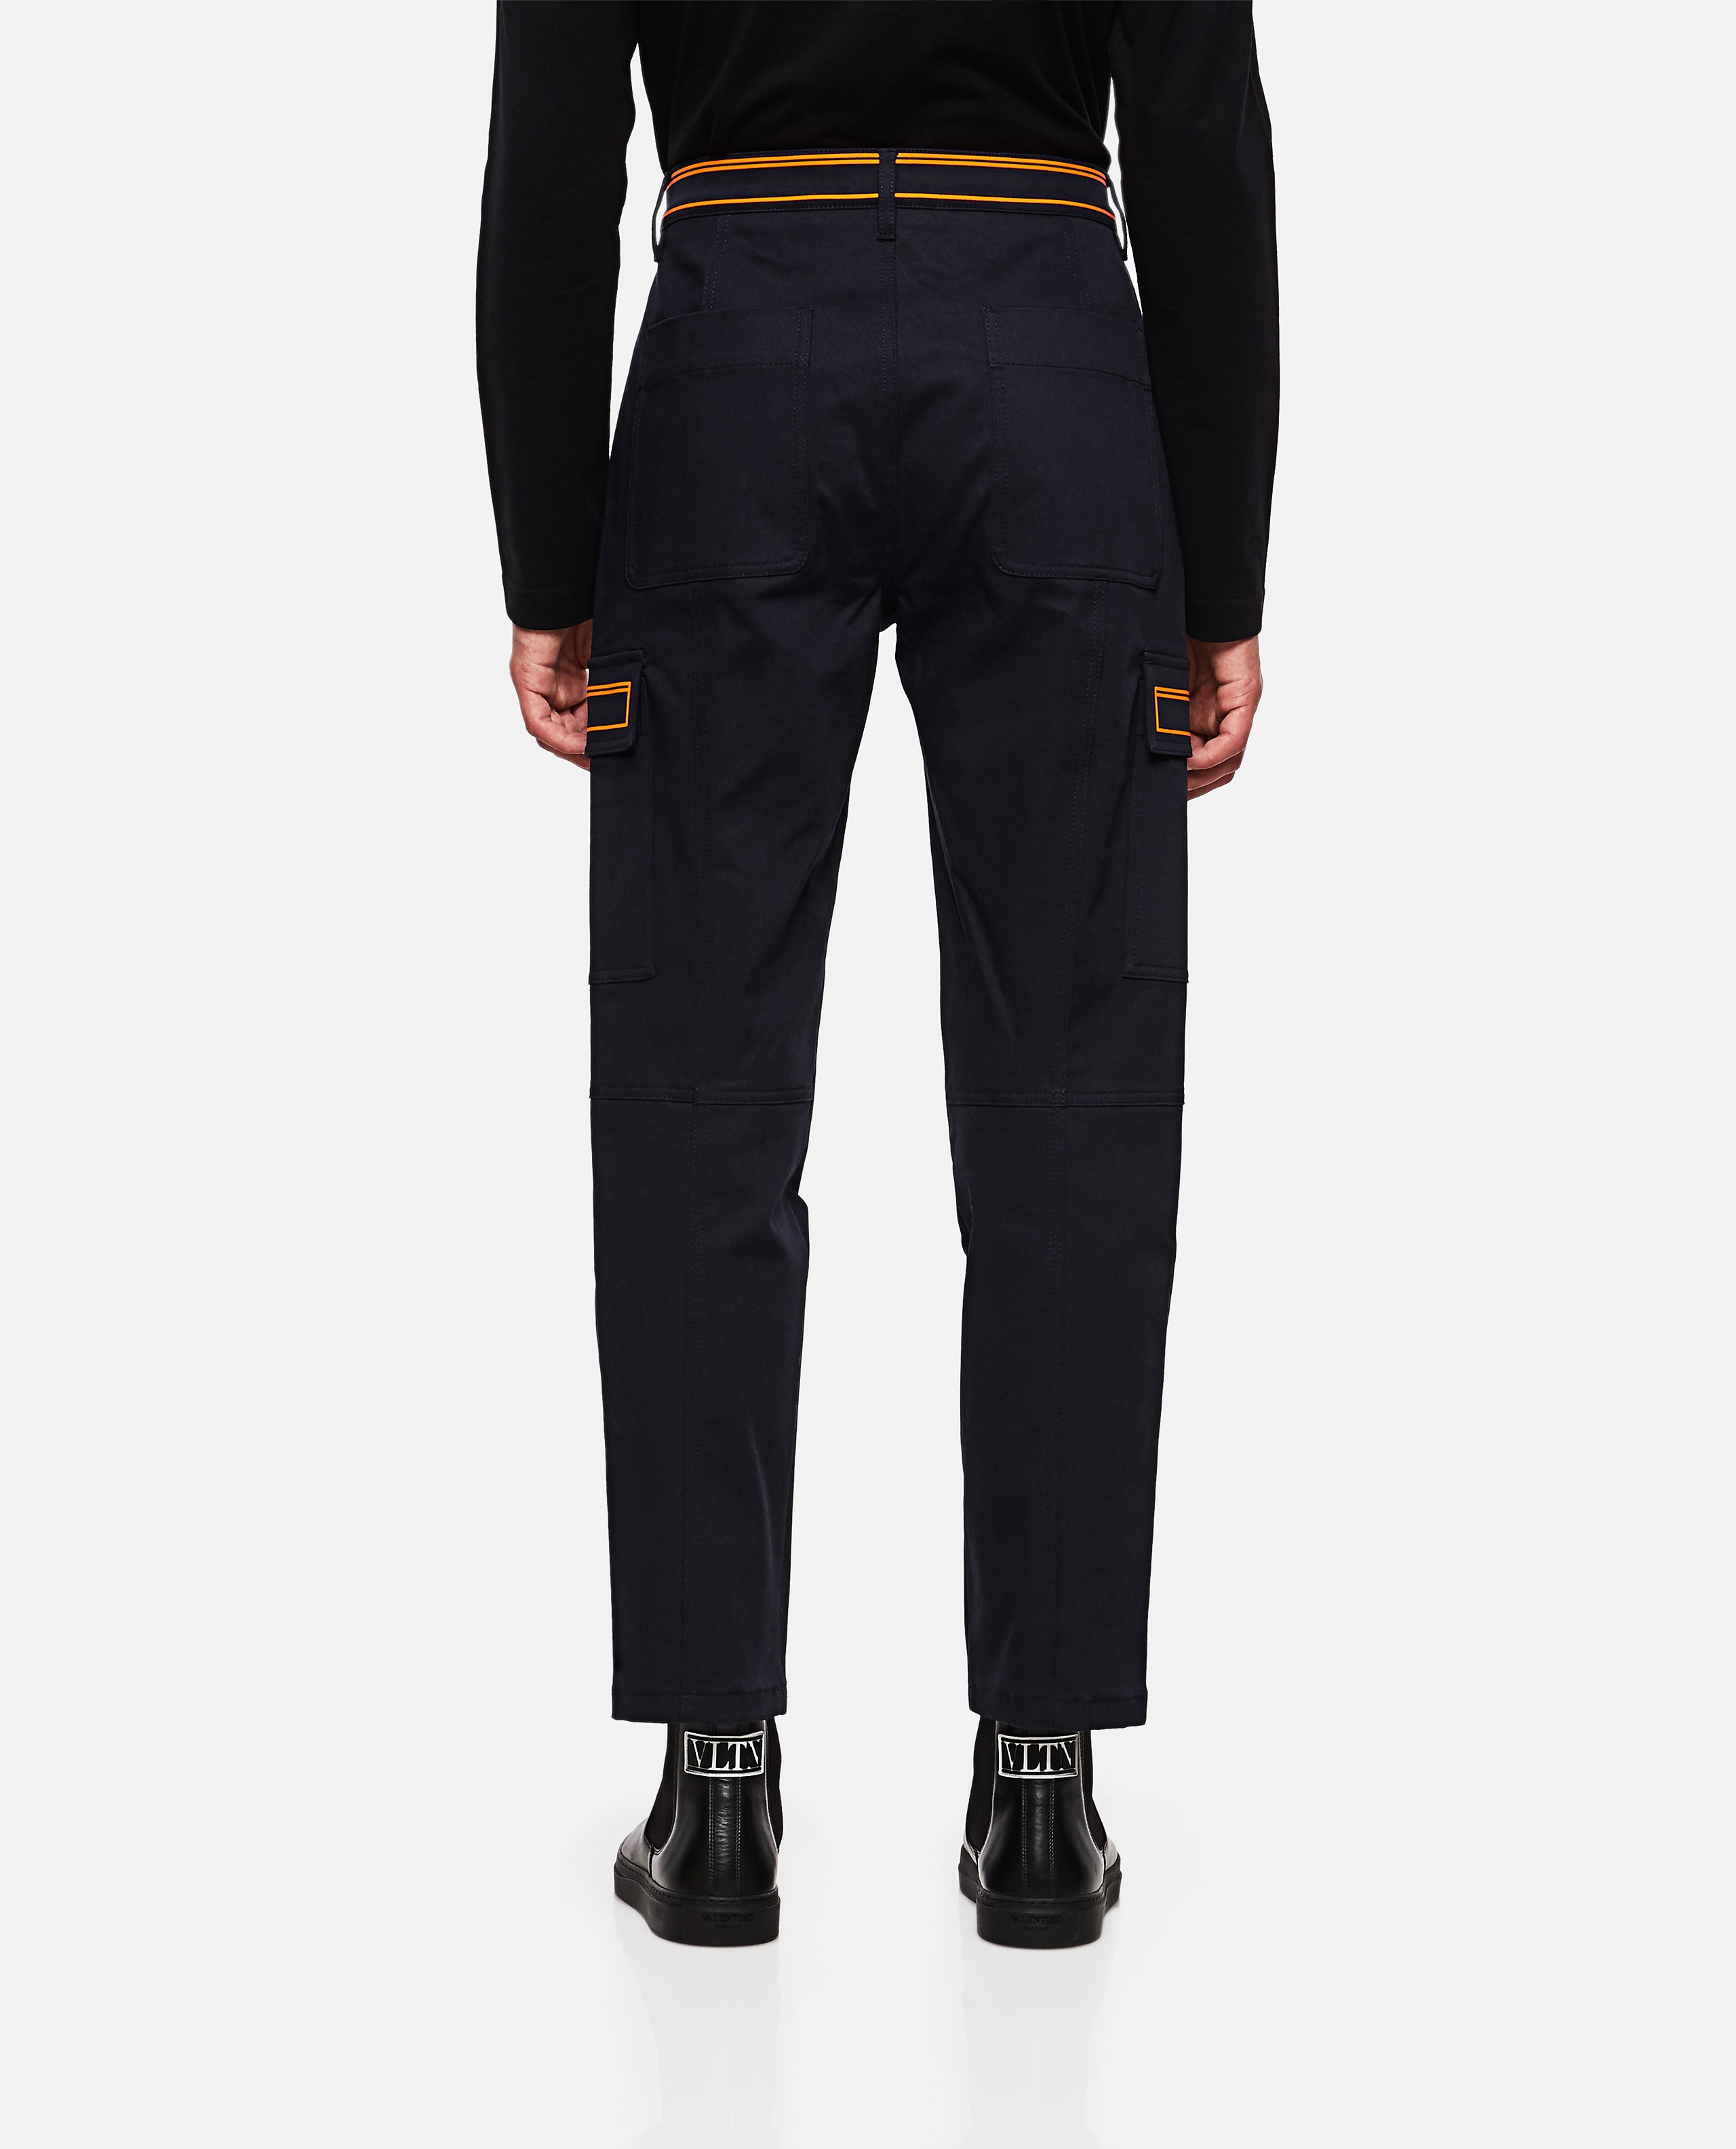 Trousers with contrasting detail Men Valentino 000263550038963 3